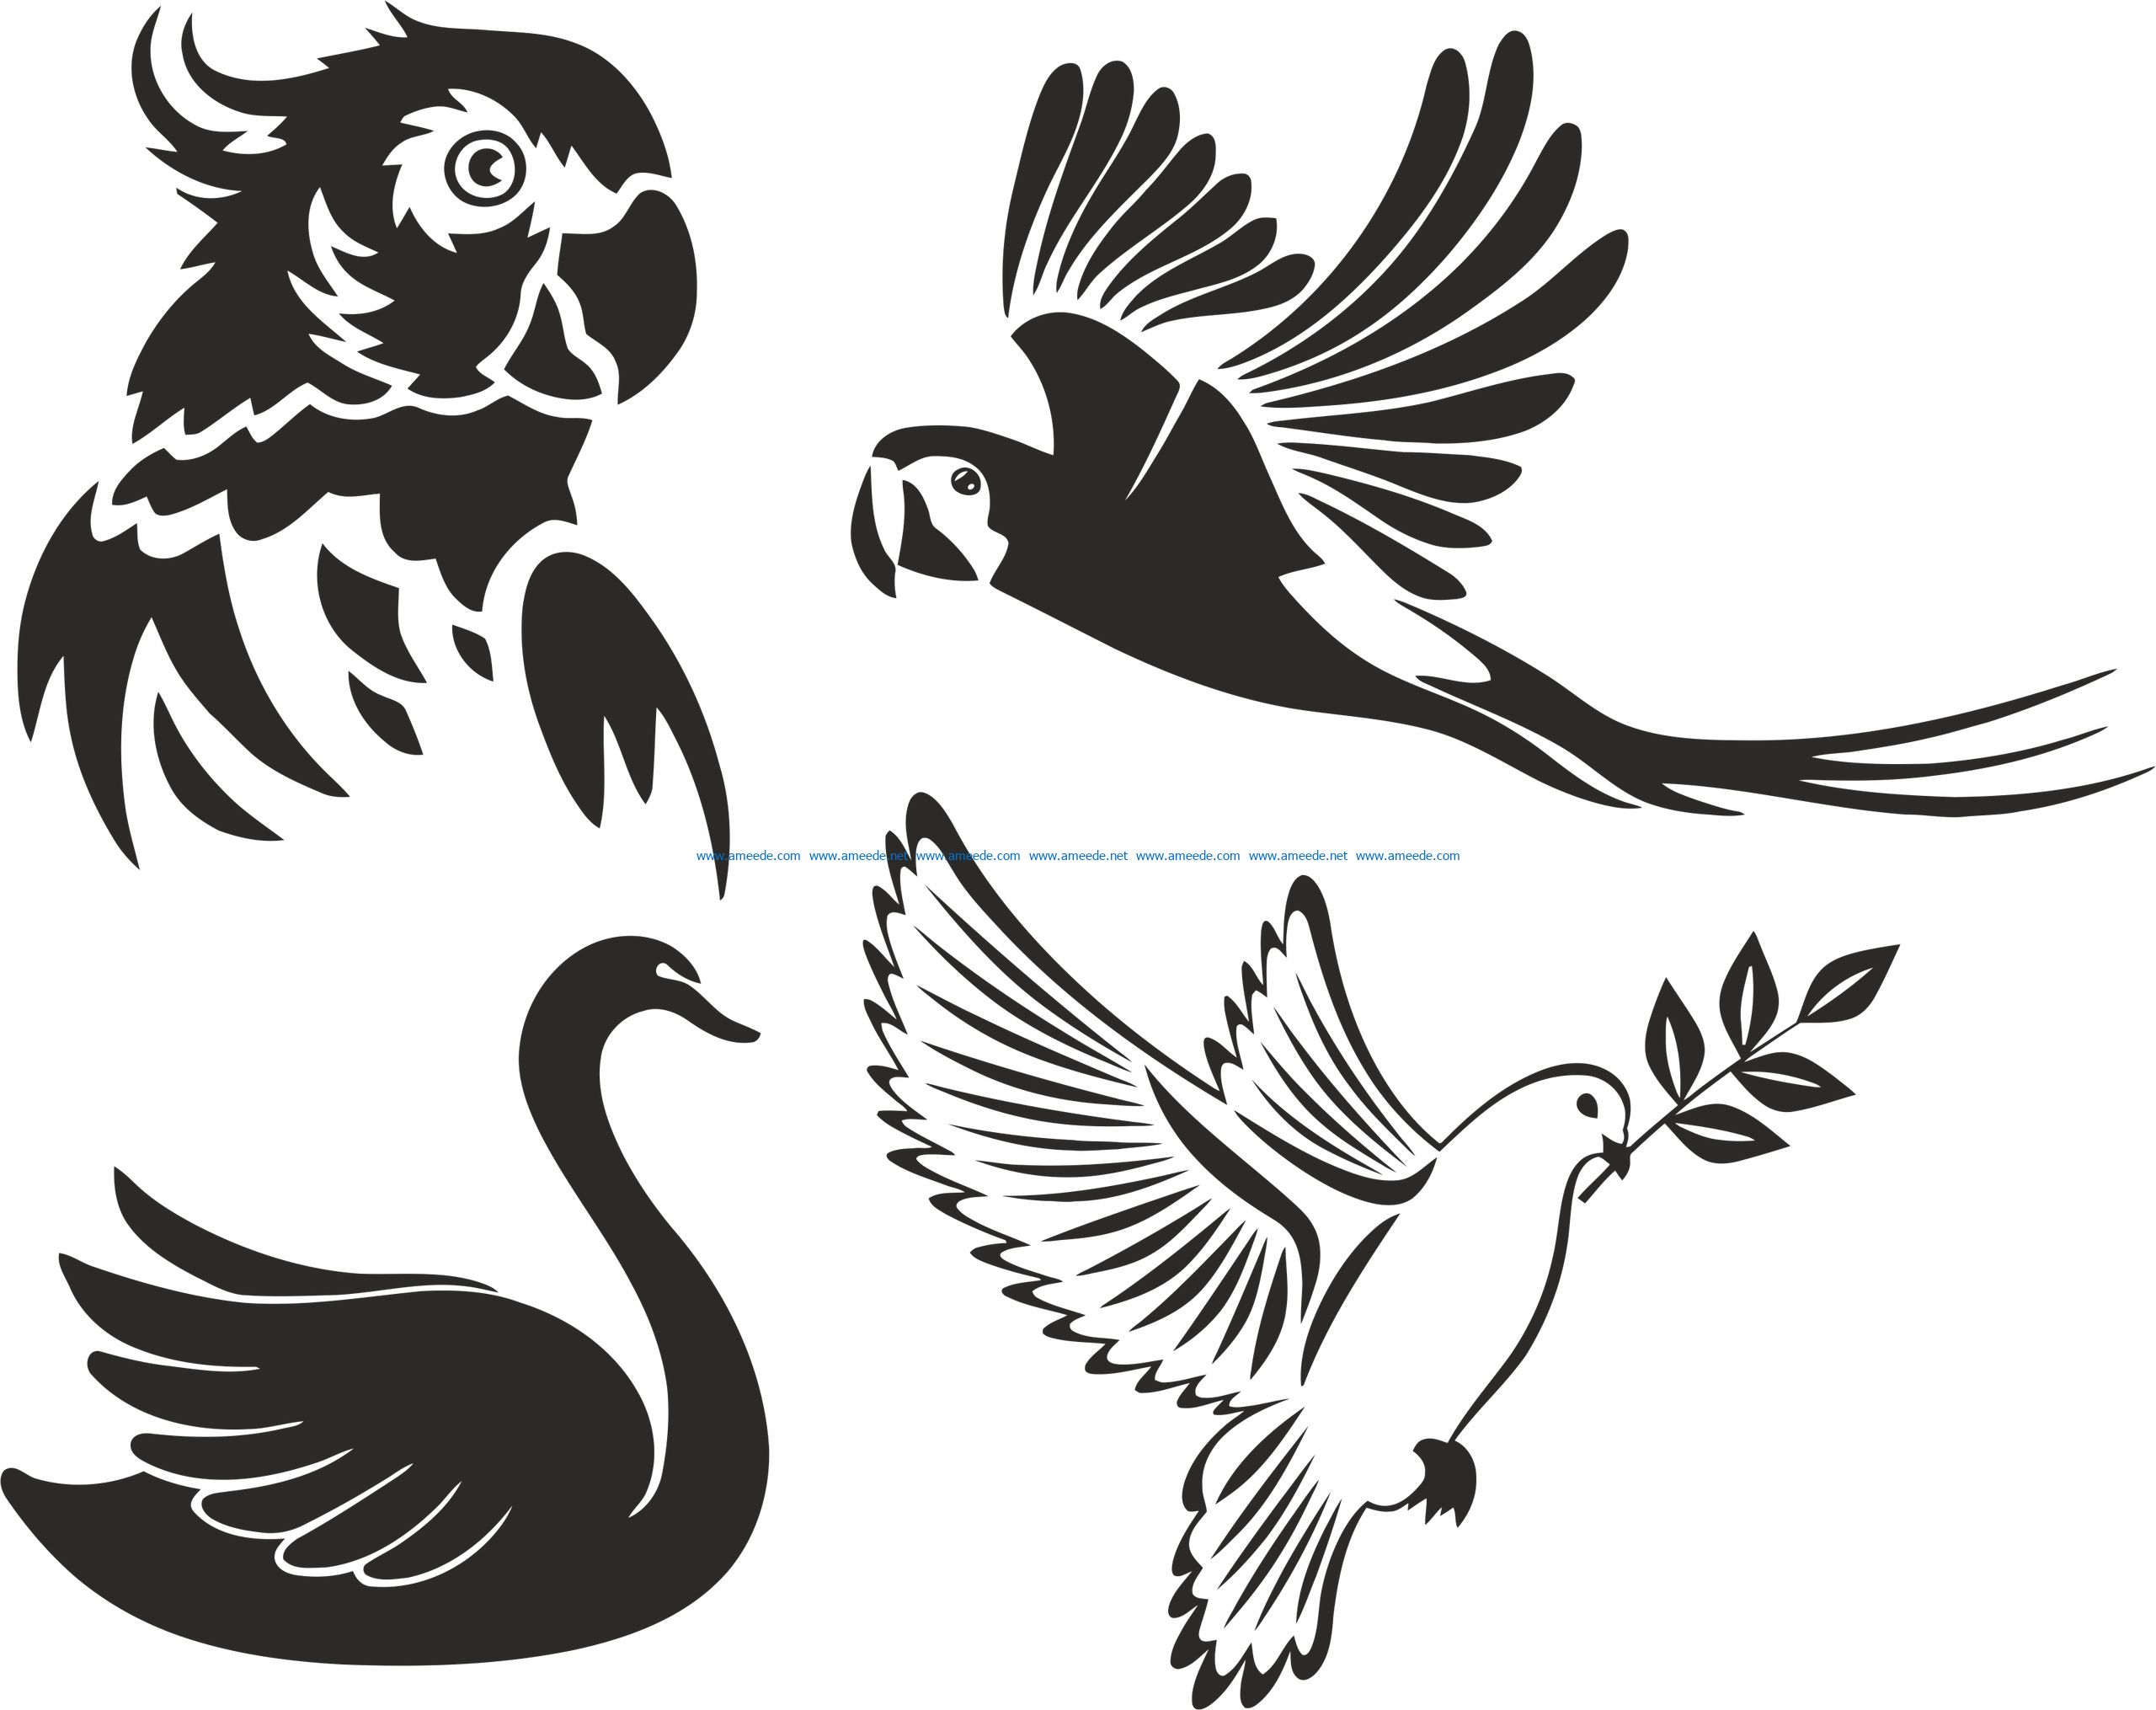 birds stencils file cdr and dxf free vector download for print or laser engraving machines